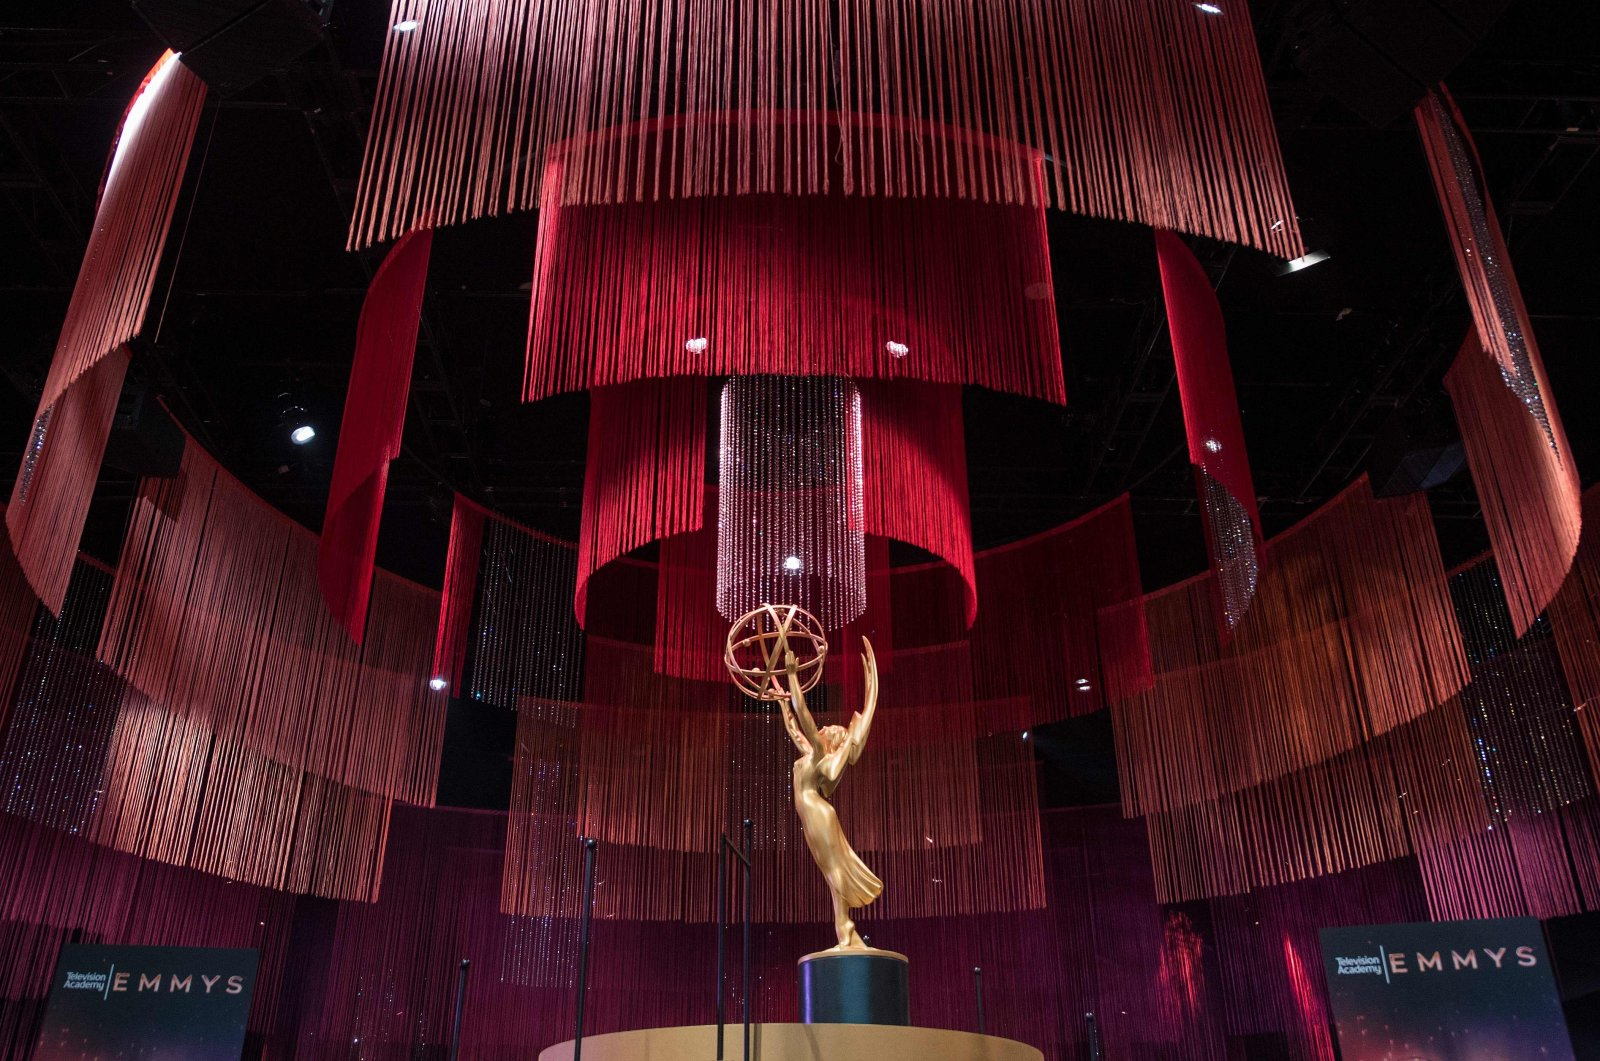 In this Sept. 12, 2019, file photo, an Emmy statue is seen on the stage at the 71st Emmy Awards Governors Ball press preview at LA Live in Los Angeles. (AFP Photo)